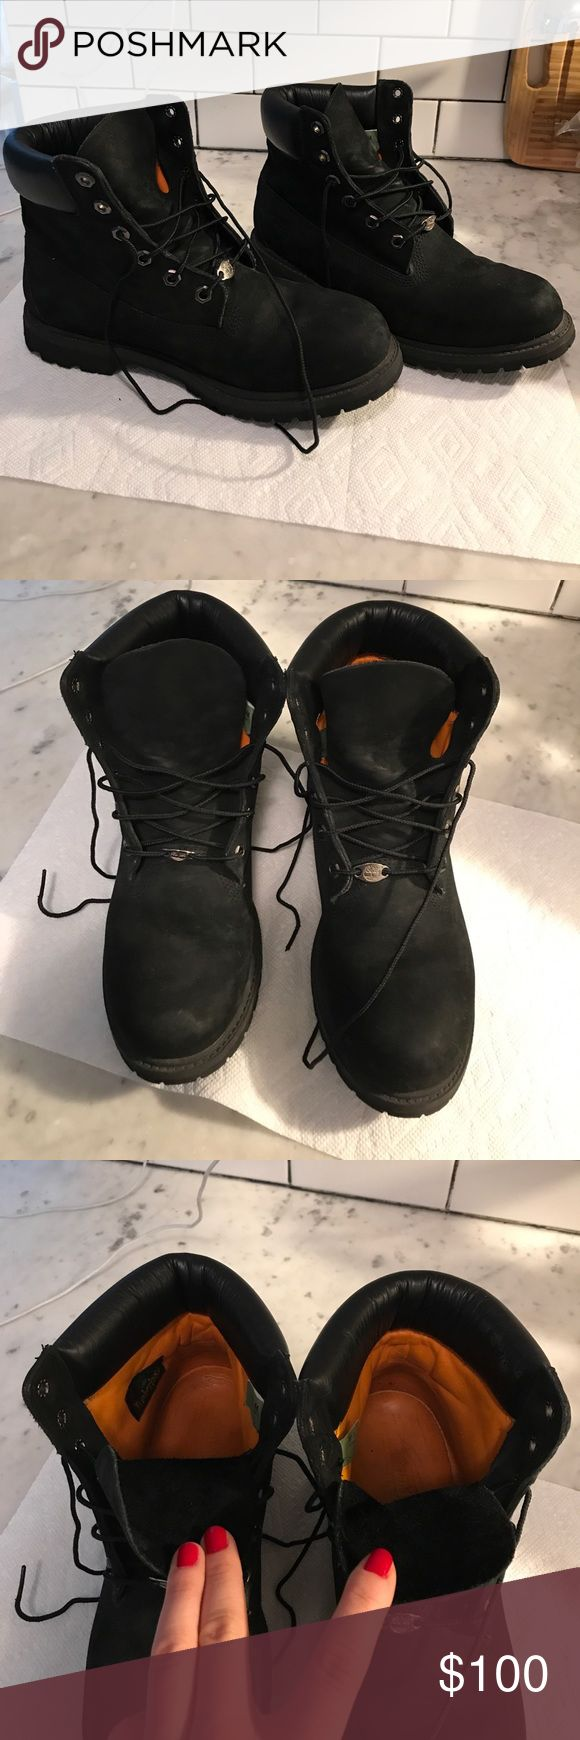 Women's Timberland black custom boots I made these custom online. All black Timberlands woman's size 10. In excellent condition. Barely worn. Not even fully broken in yet, they are still stiff. Timberland Shoes Combat & Moto Boots